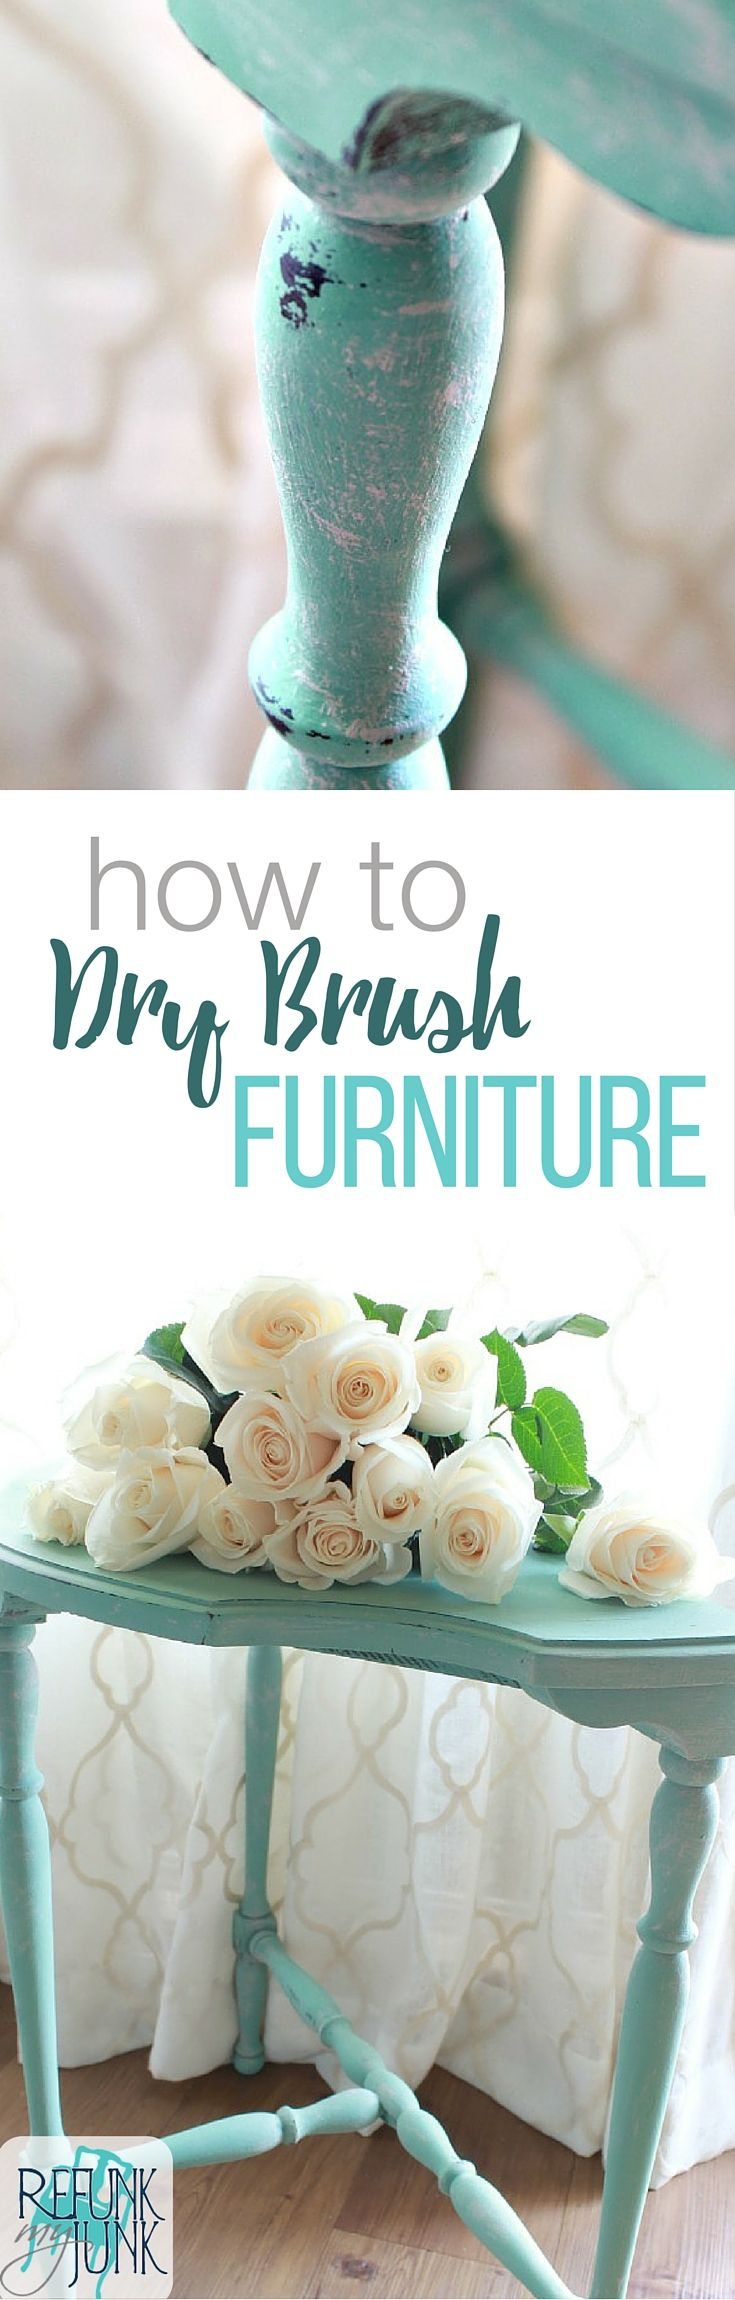 how to dry brush furniture painting technique. Furniture painting tips and tutorial by Refunk My Junk. Using Heirloom Tradition's Privilege and Row House.